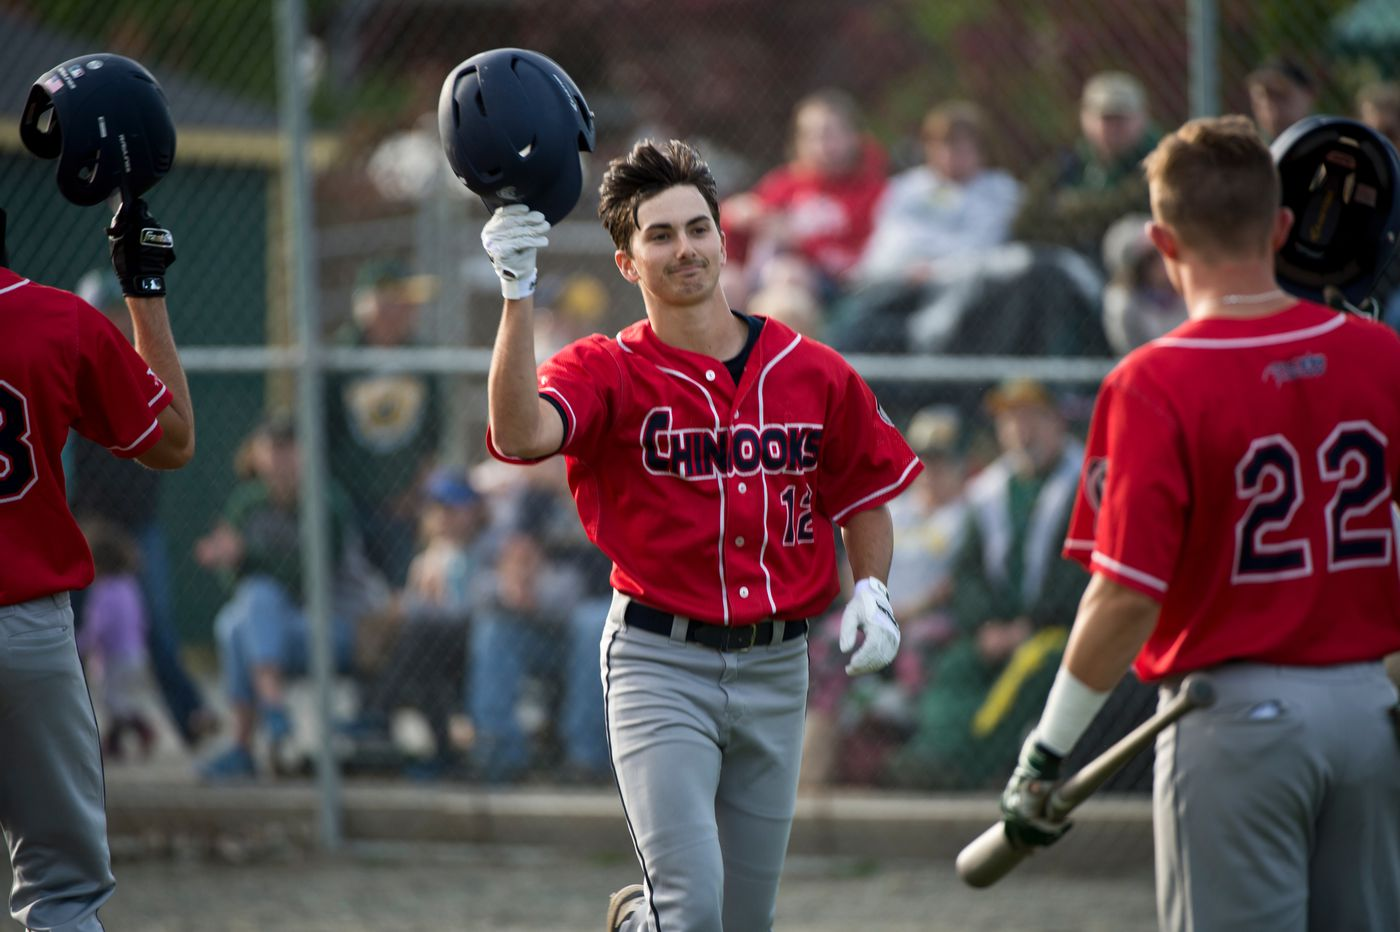 Chinooks batter Haden Keller is greeted by teammates after he hit the ABL season's first home run. (Marc Lester / ADN)